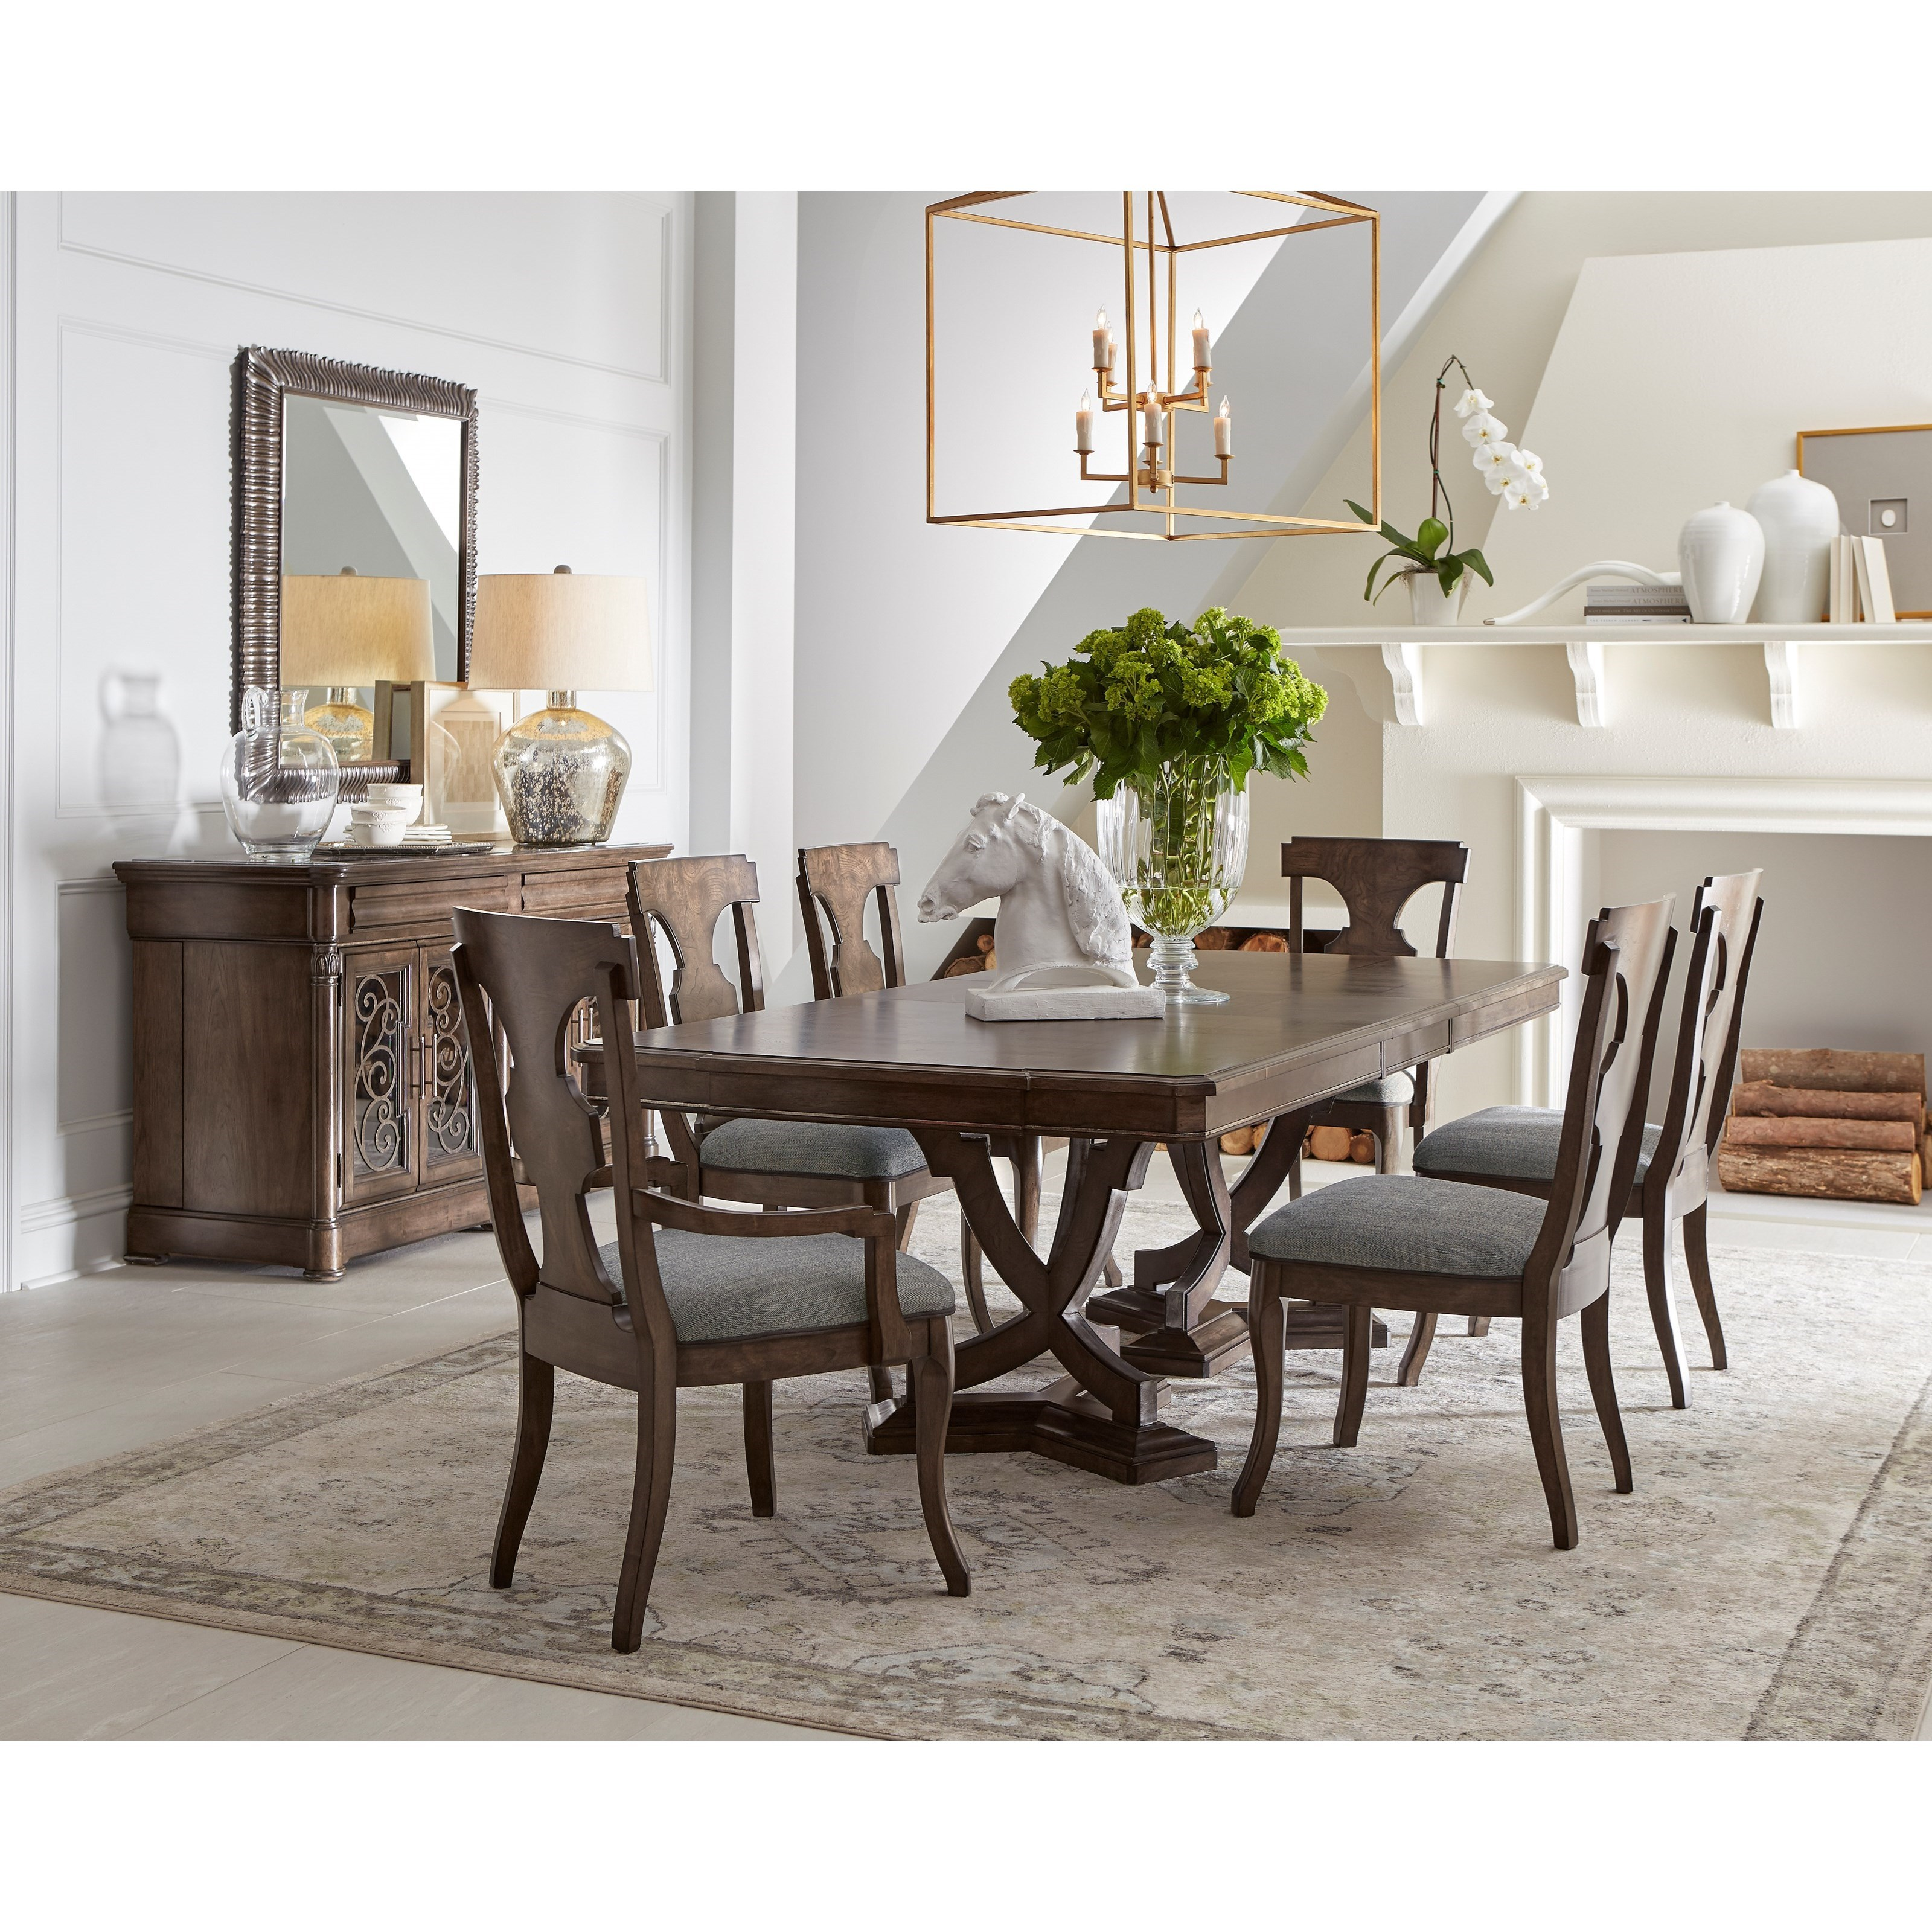 Landmark Formal Dining Group by A.R.T. Furniture Inc at Home Collections Furniture